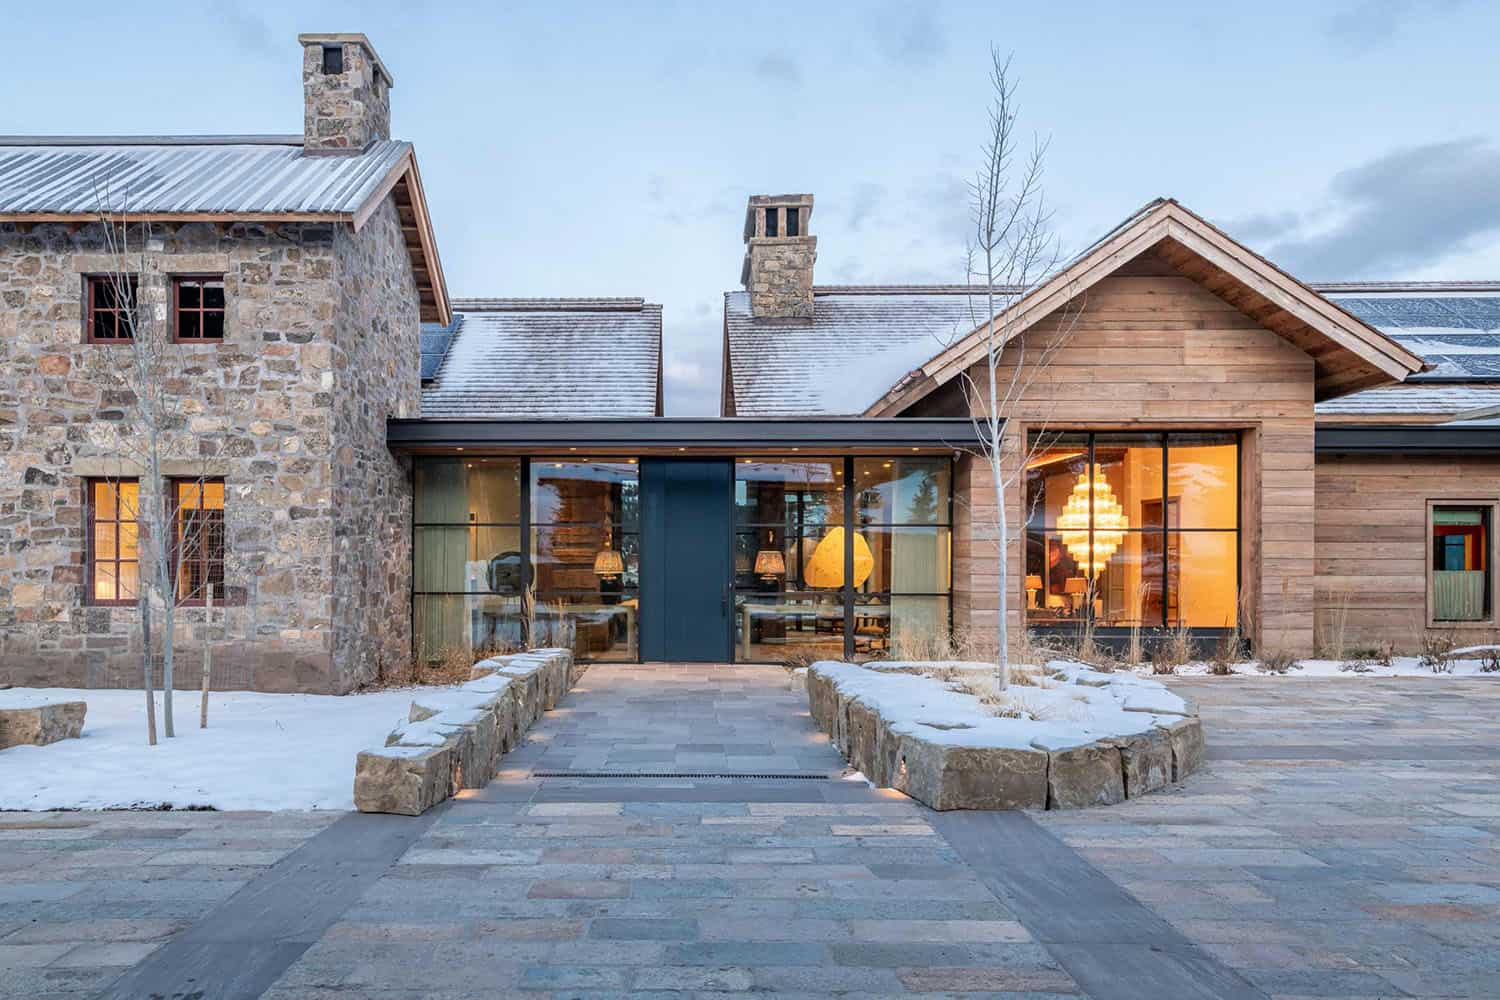 Modern ski house in Montana provides a fabulous winter getaway